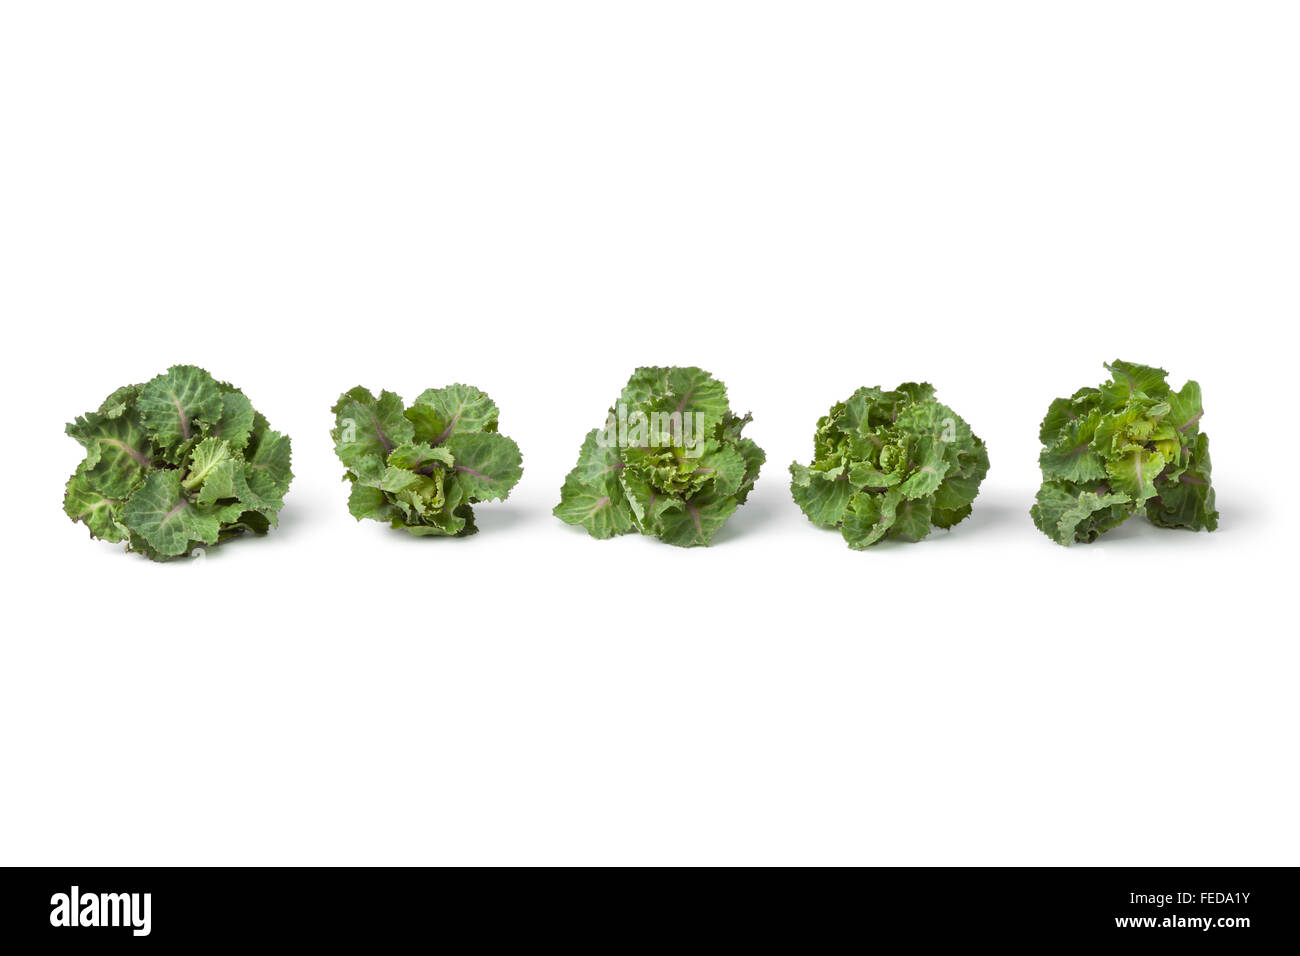 Row of fresh green flower sprouts on white background - Stock Image